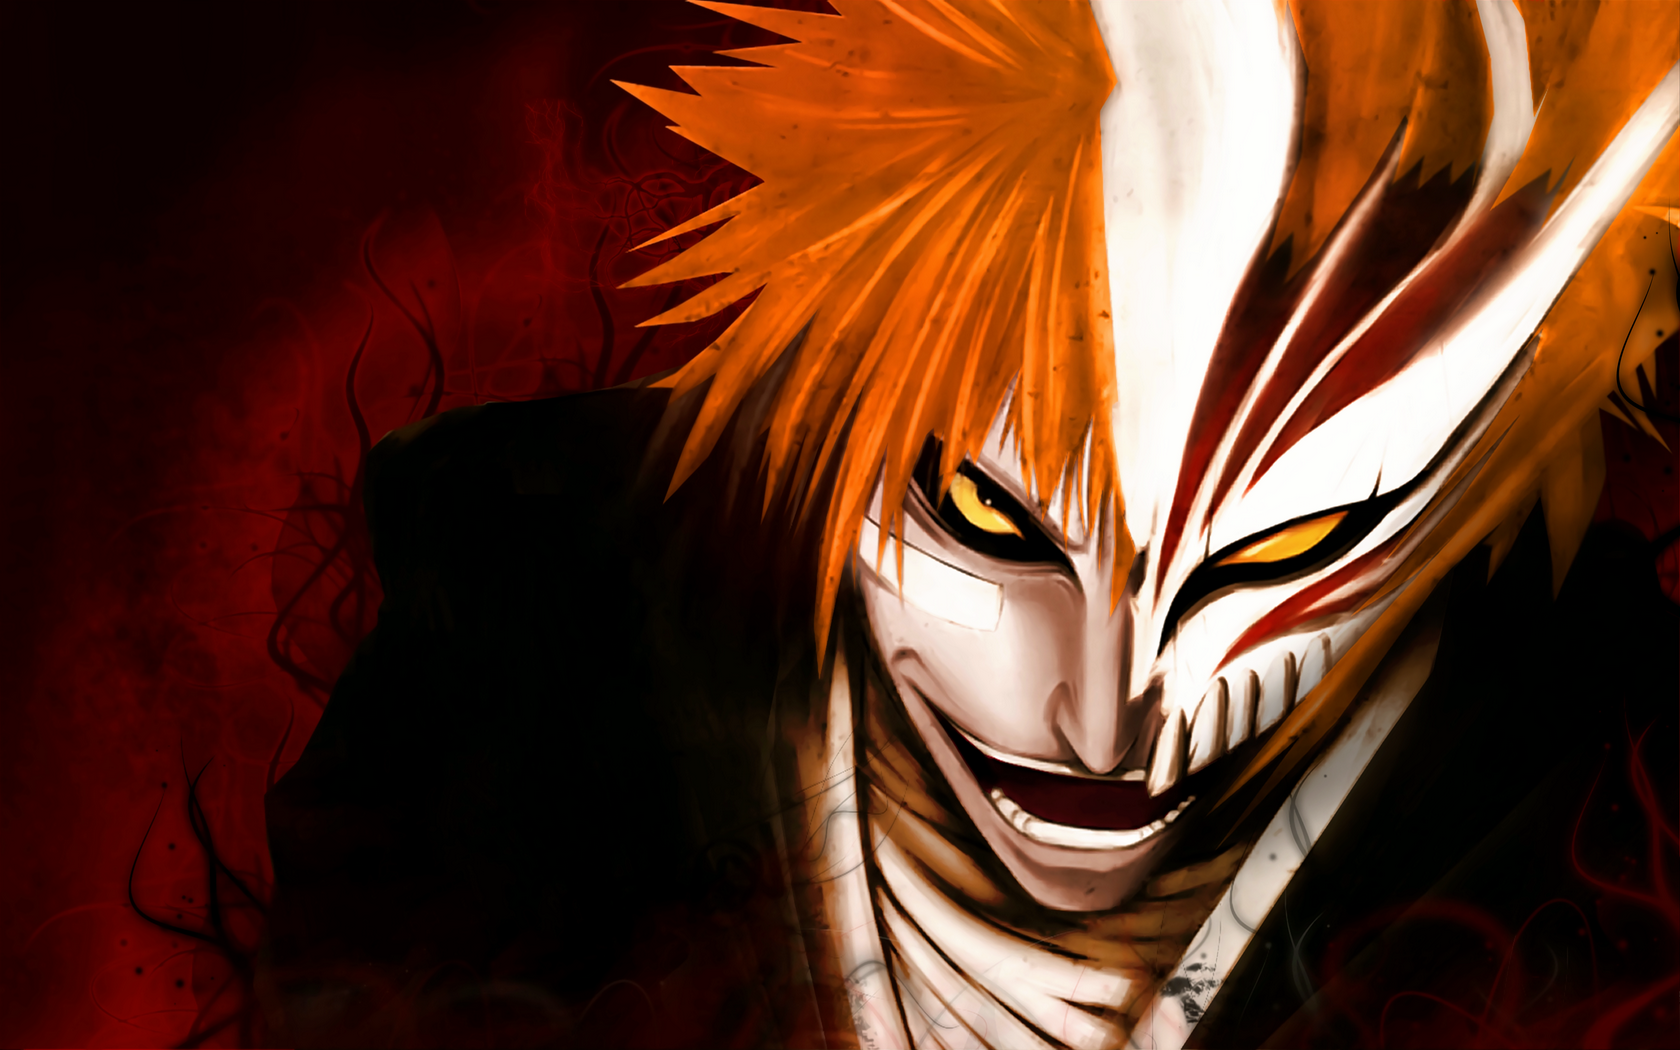 Wallpaper Anime Bleach Hd Untuk Hp Android